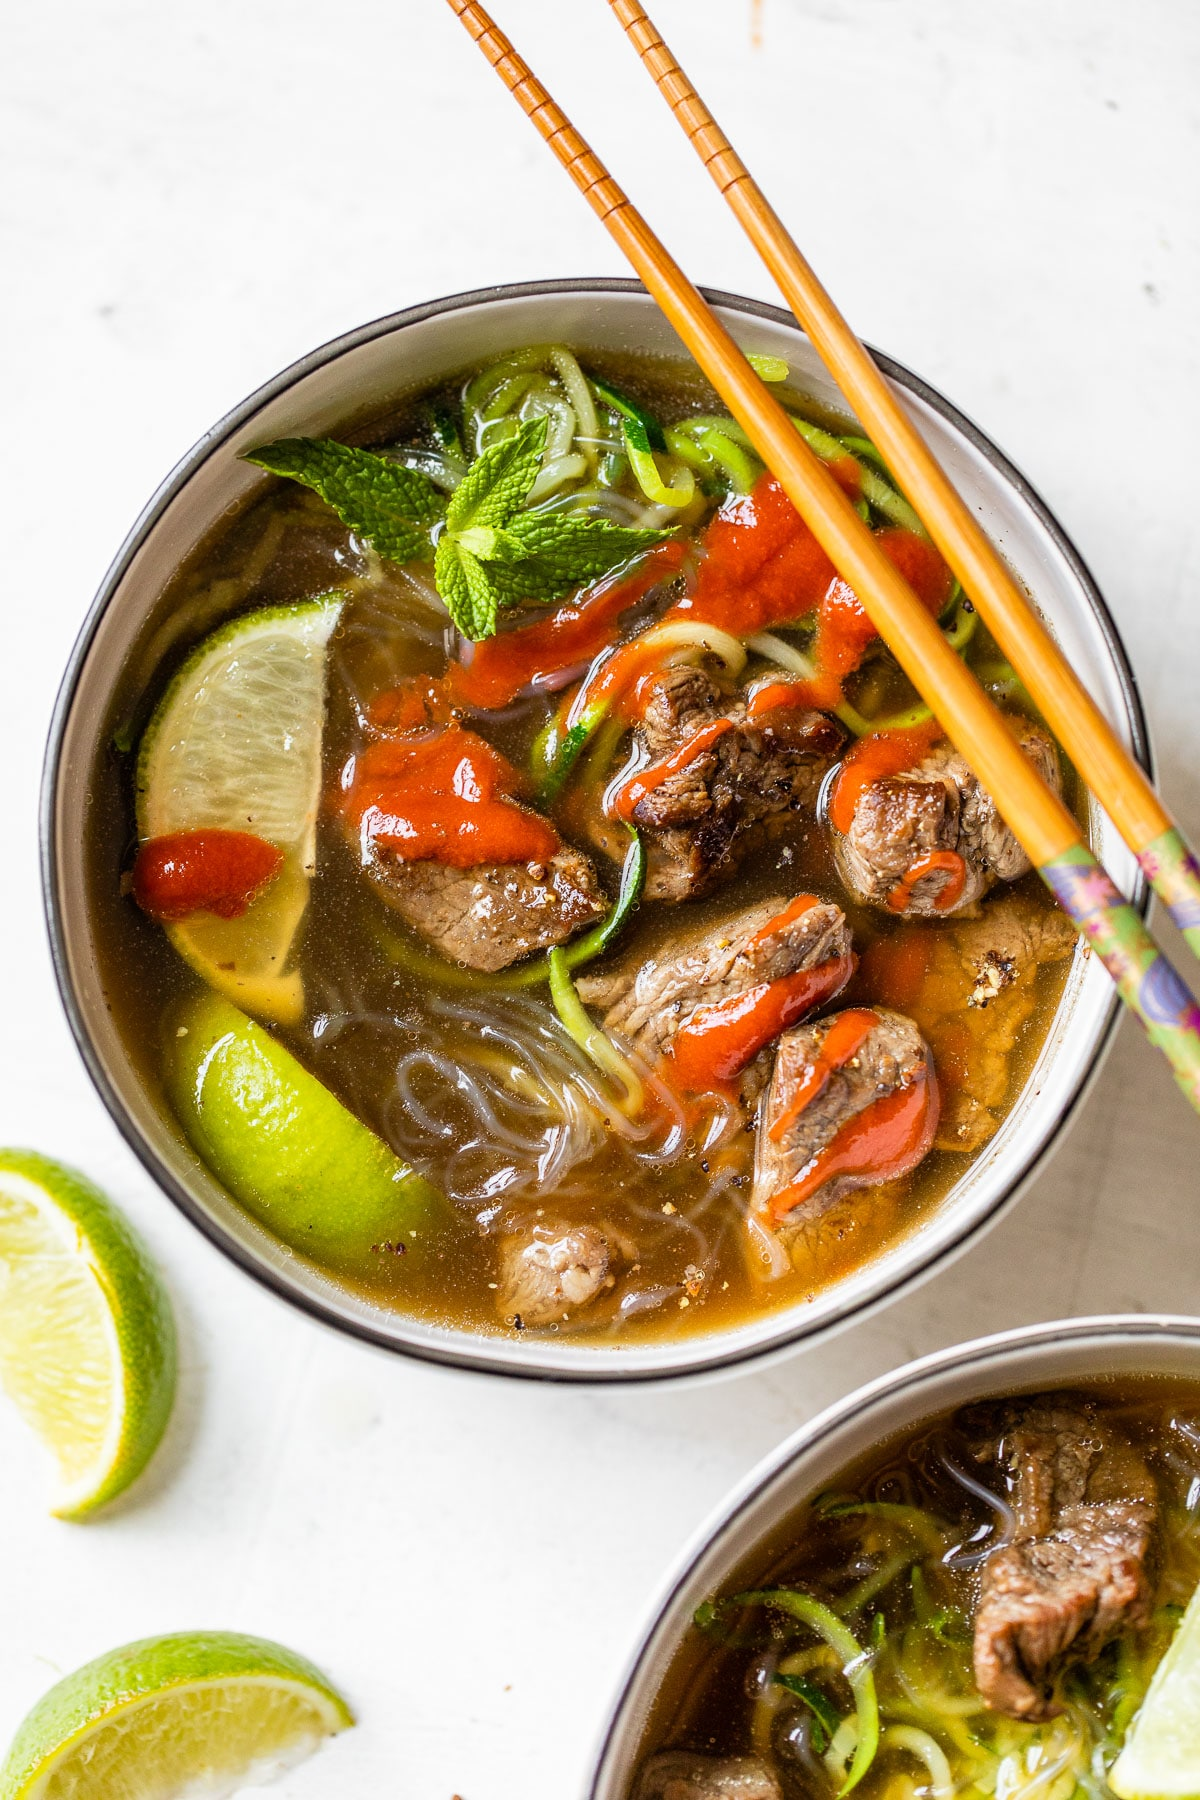 bowl of soup with noodles, beef and lime wedges